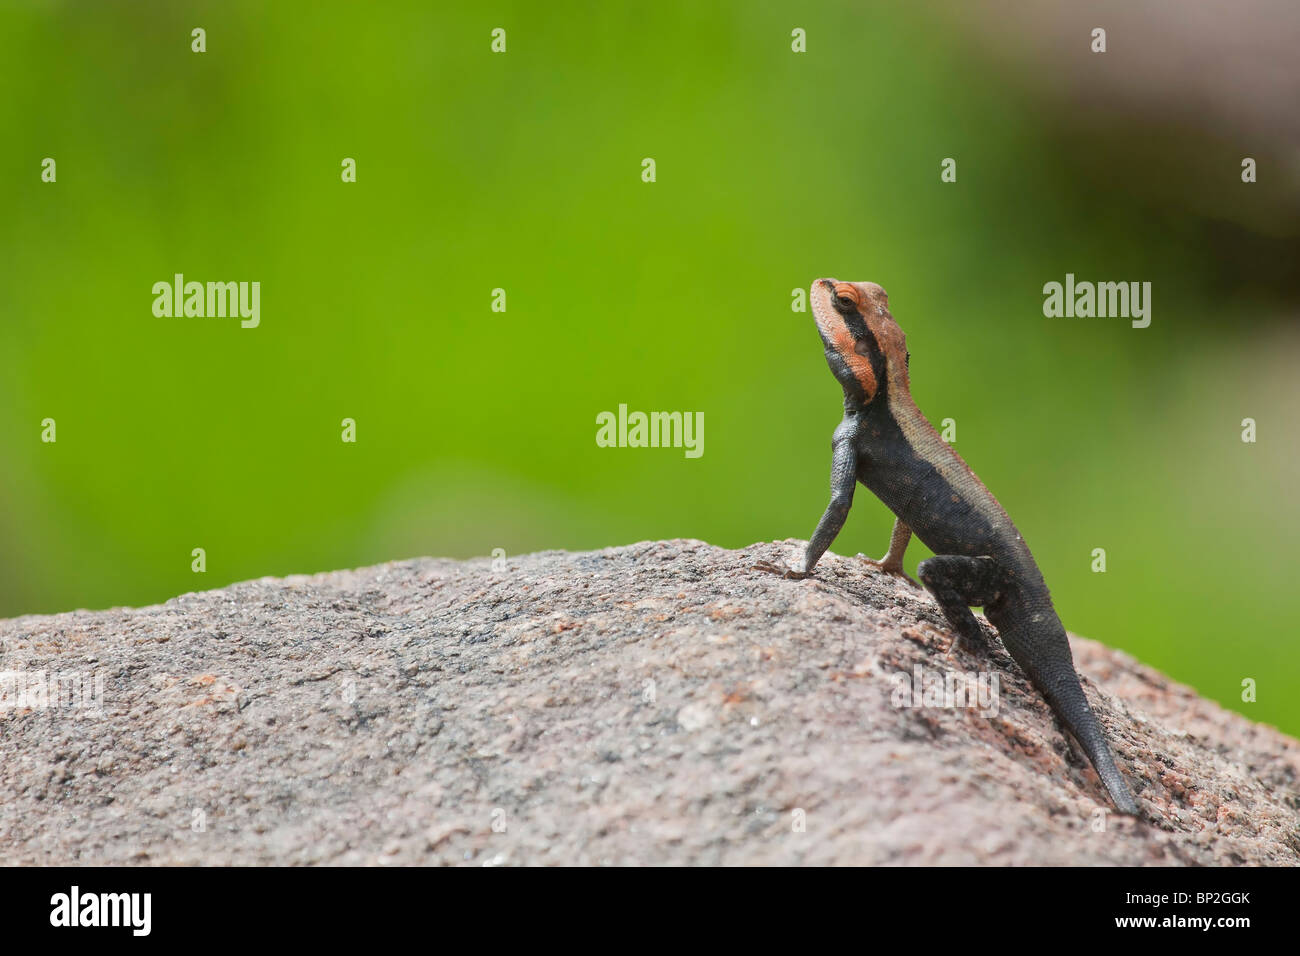 Lizard,Rock Agama, on the rocks,warming up, cold blooded,eye contact,surveillance,catchlight,body heat, scape shot, - Stock Image